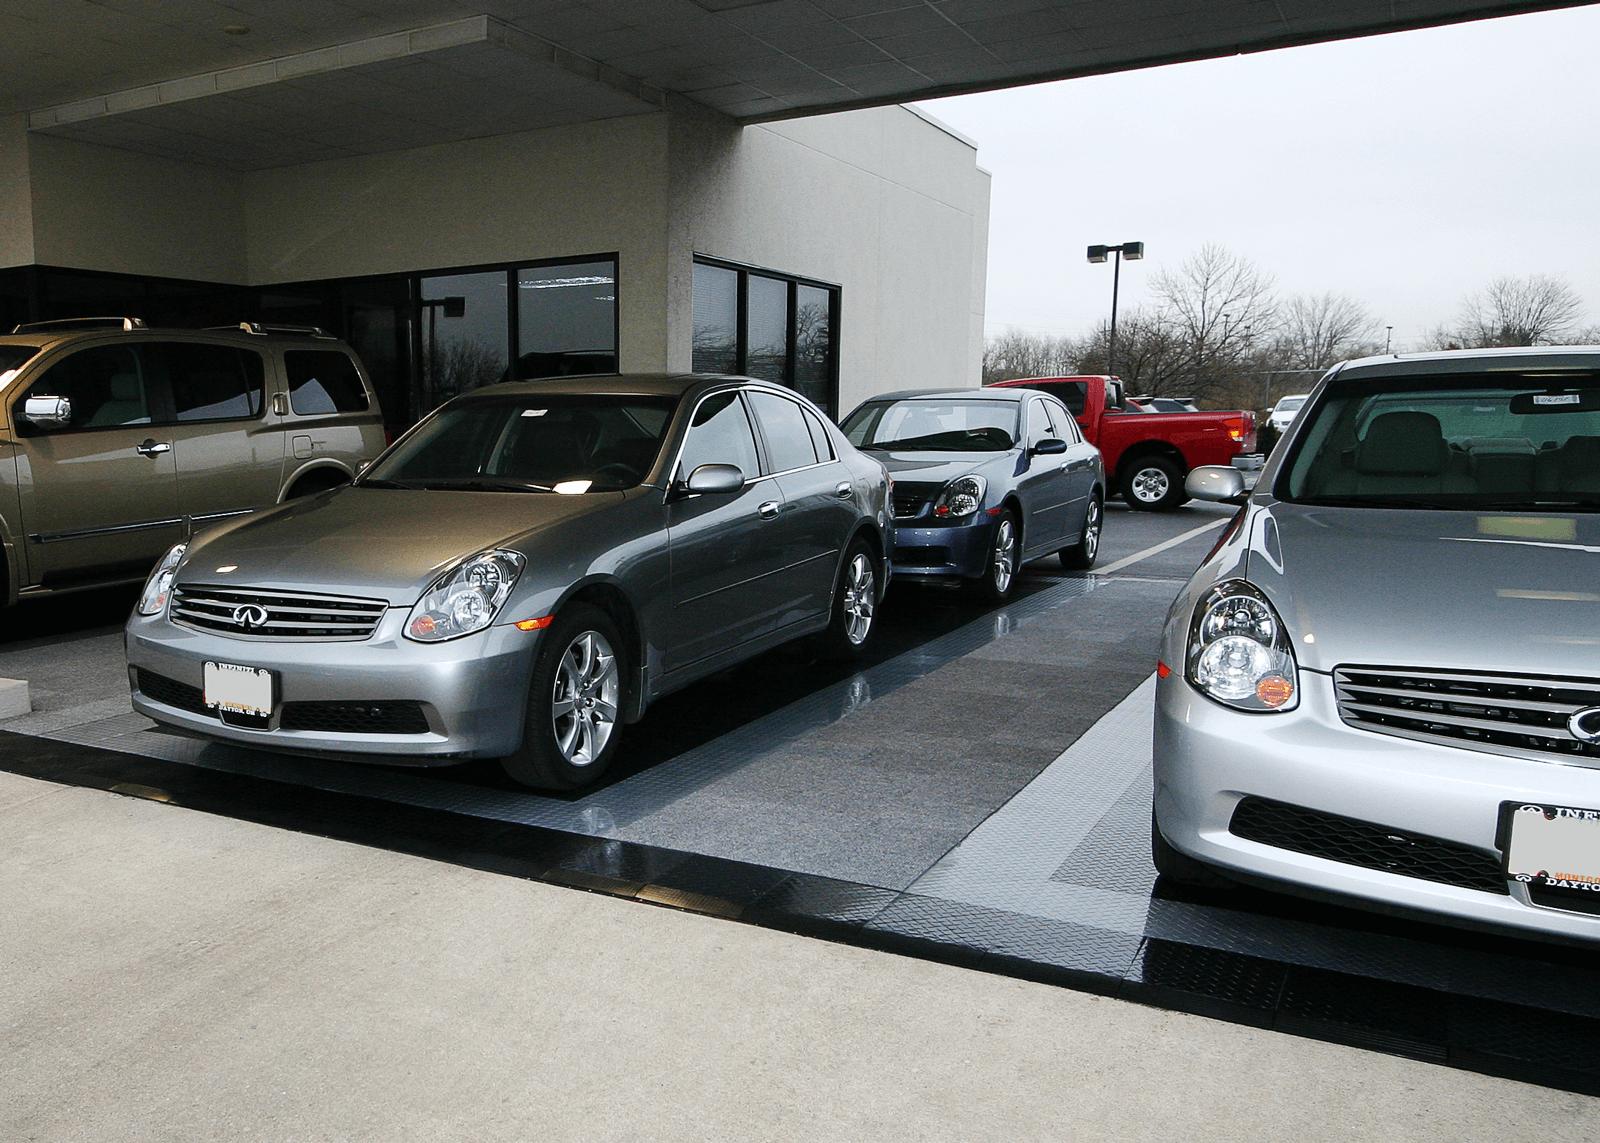 Infiniti delivery bays with RaceDeck Diamond and Snap-Carpet flooring.